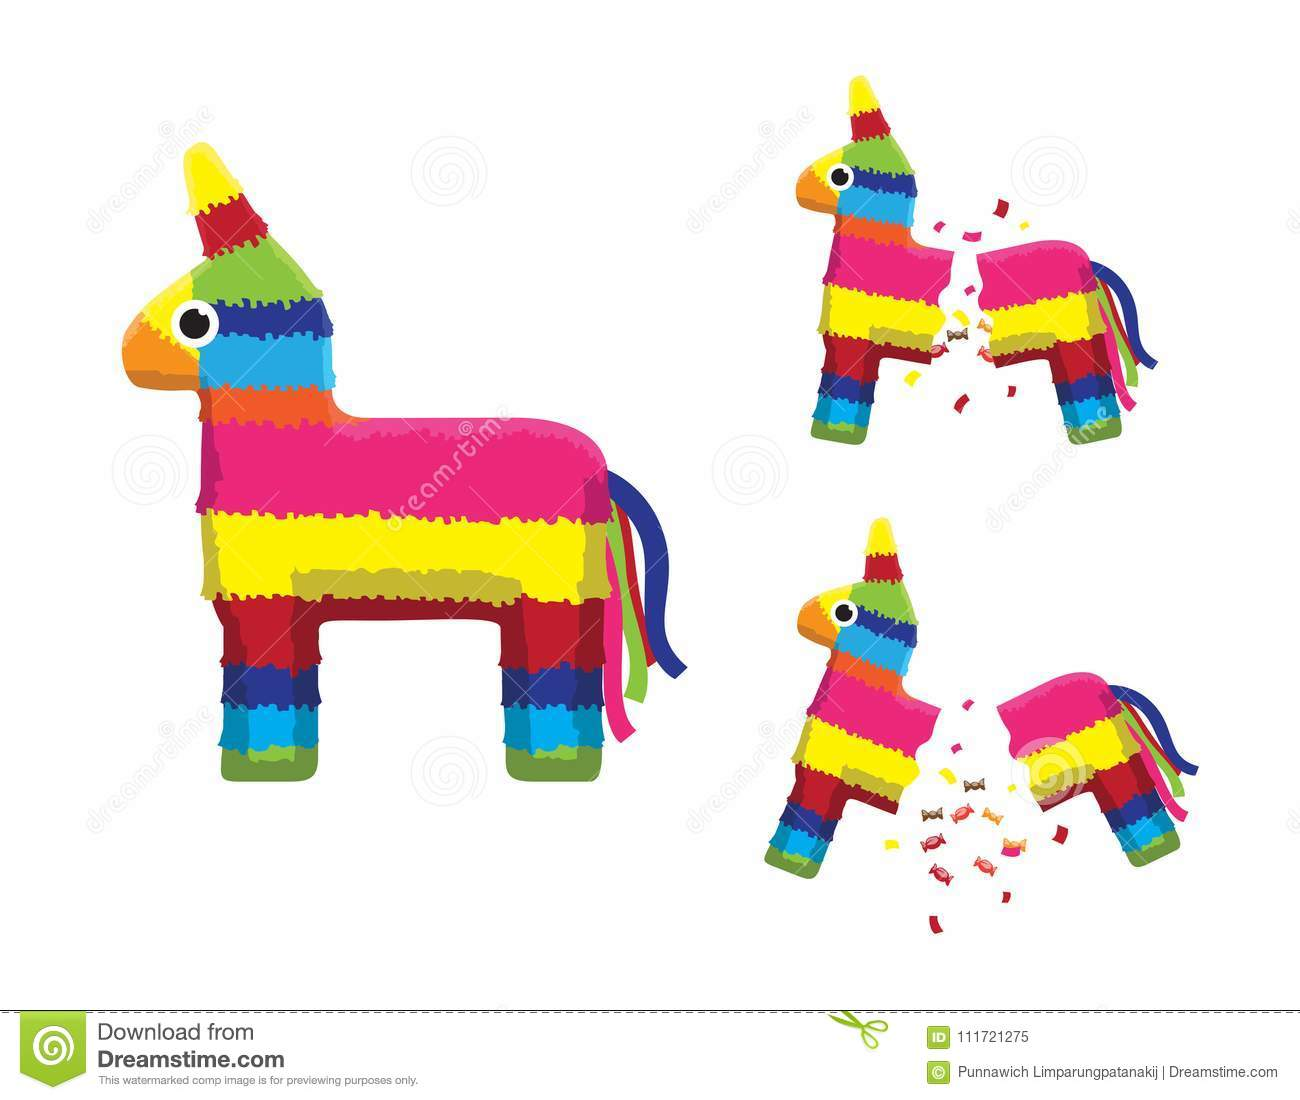 Pink Pinata Horse Breaking Animation Sequence Cartoon Vector